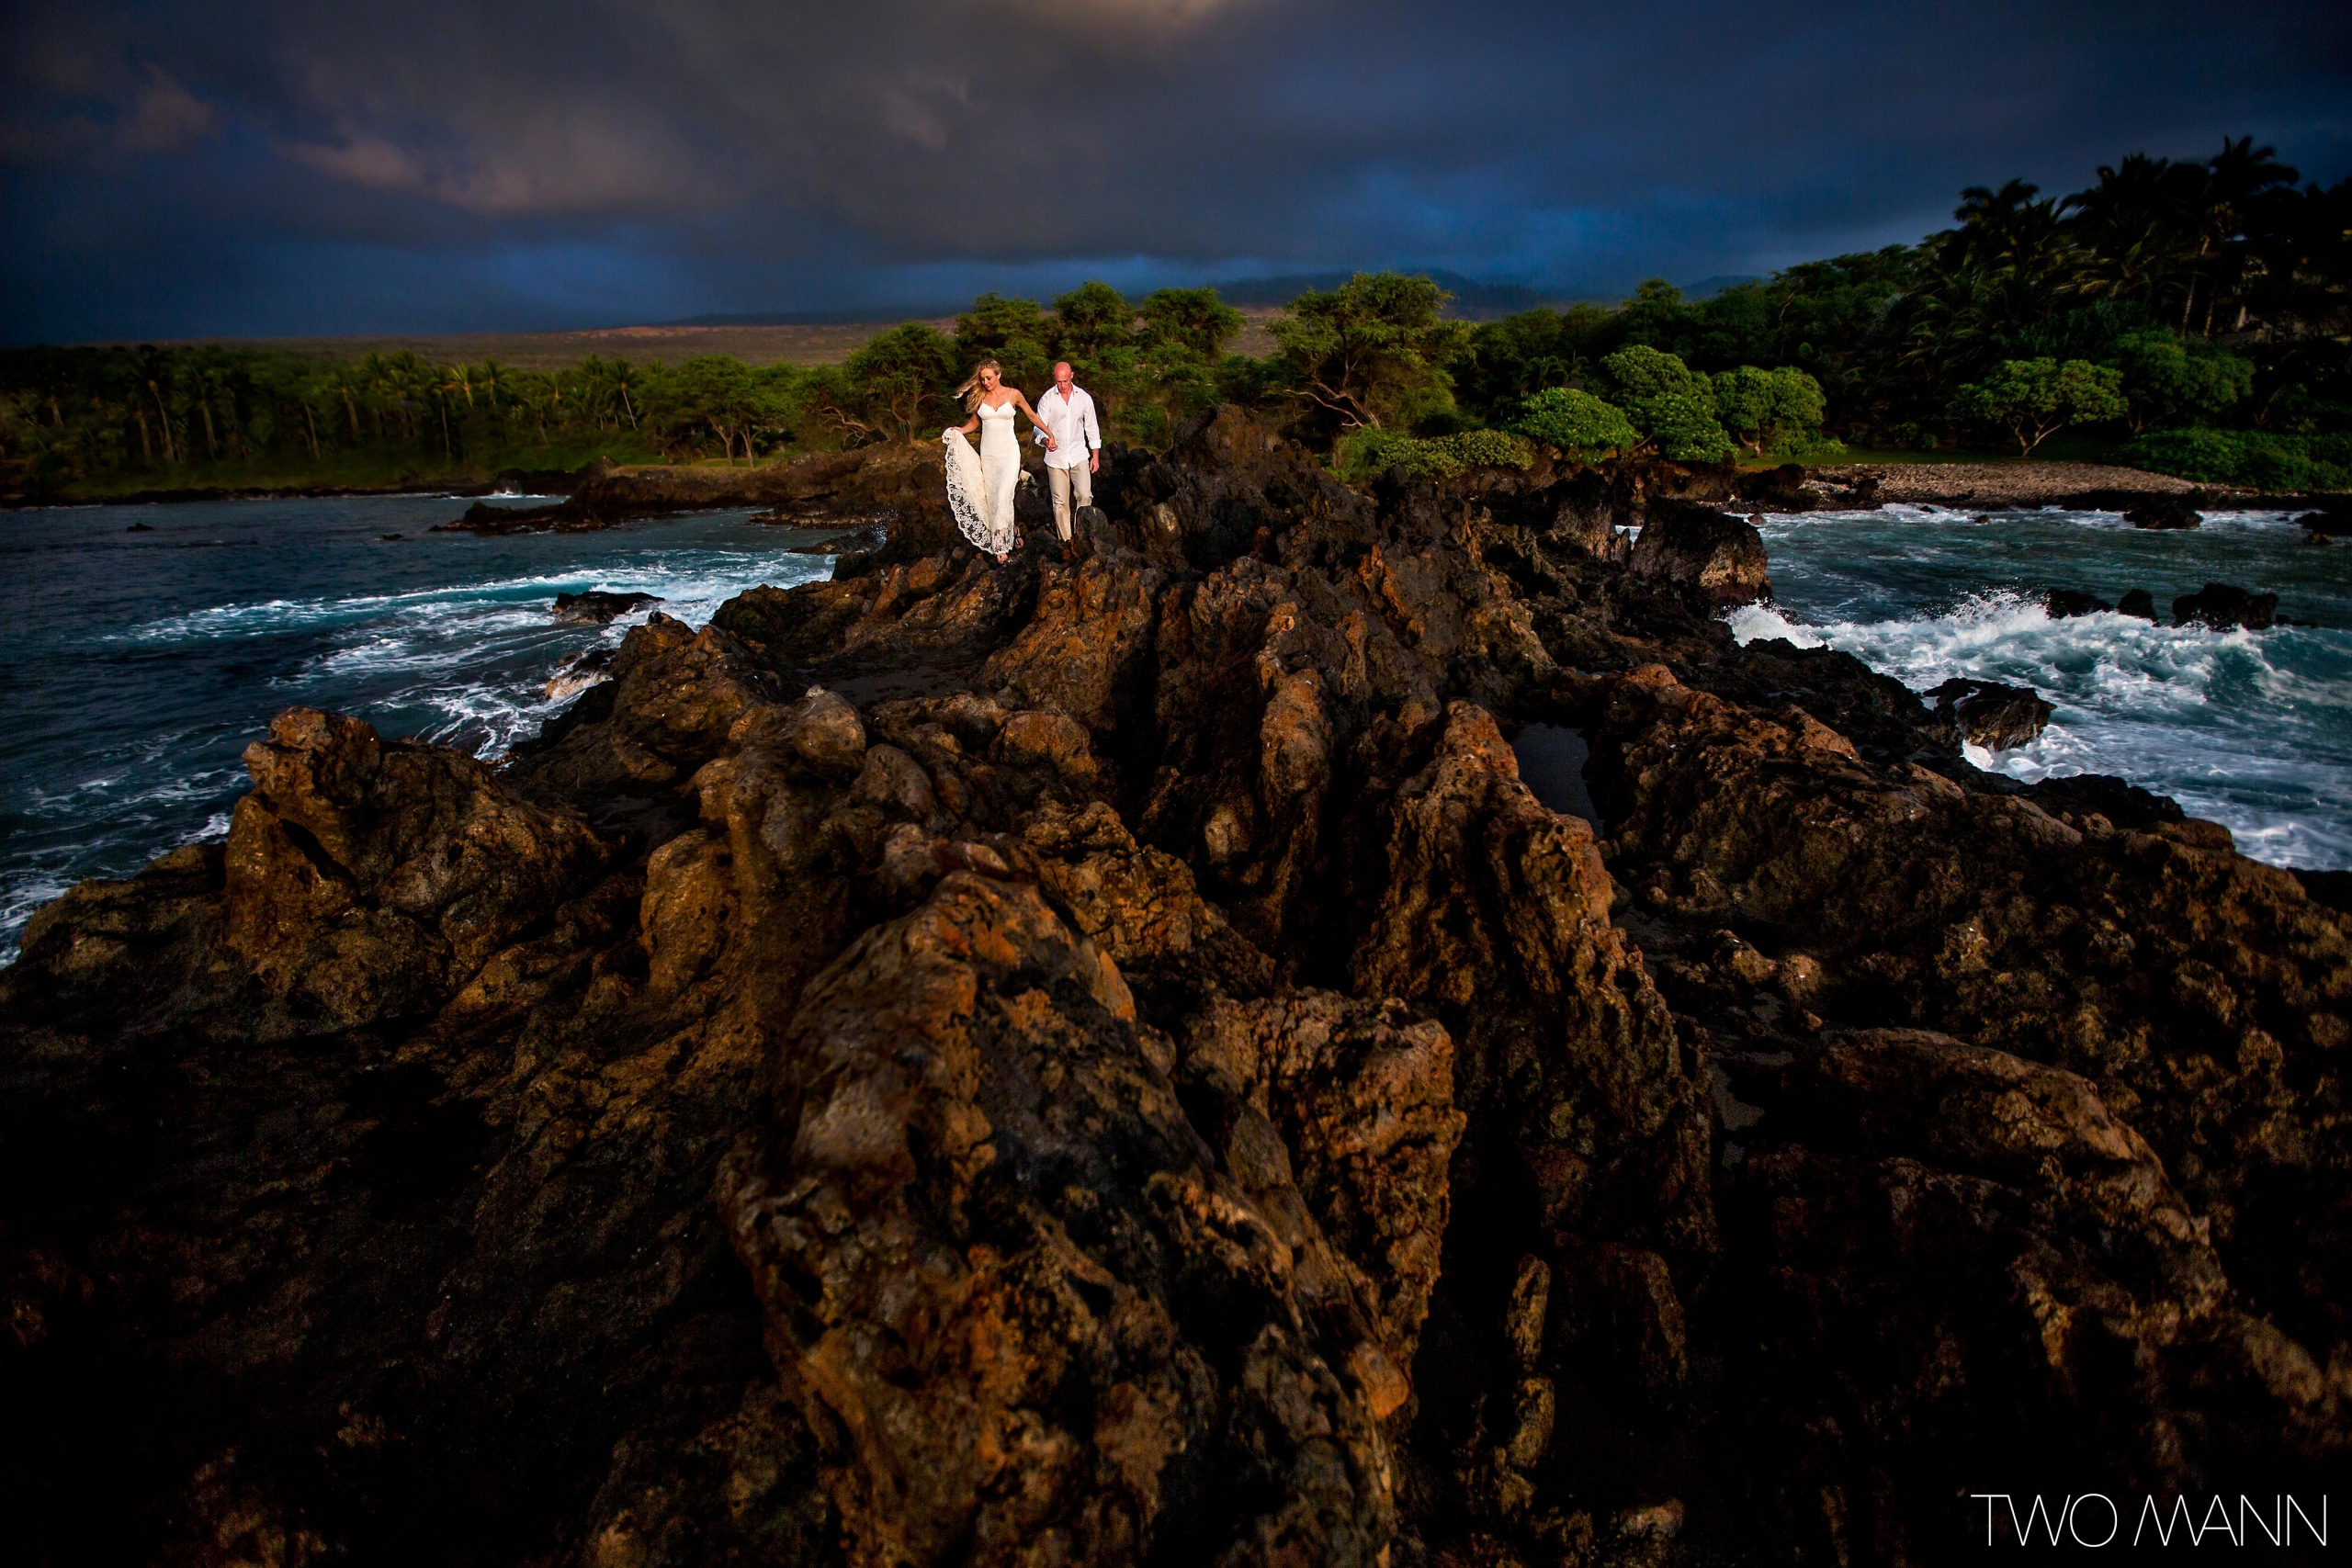 bride and groom walking on lava rocks by ocean-side at sunset in Maui